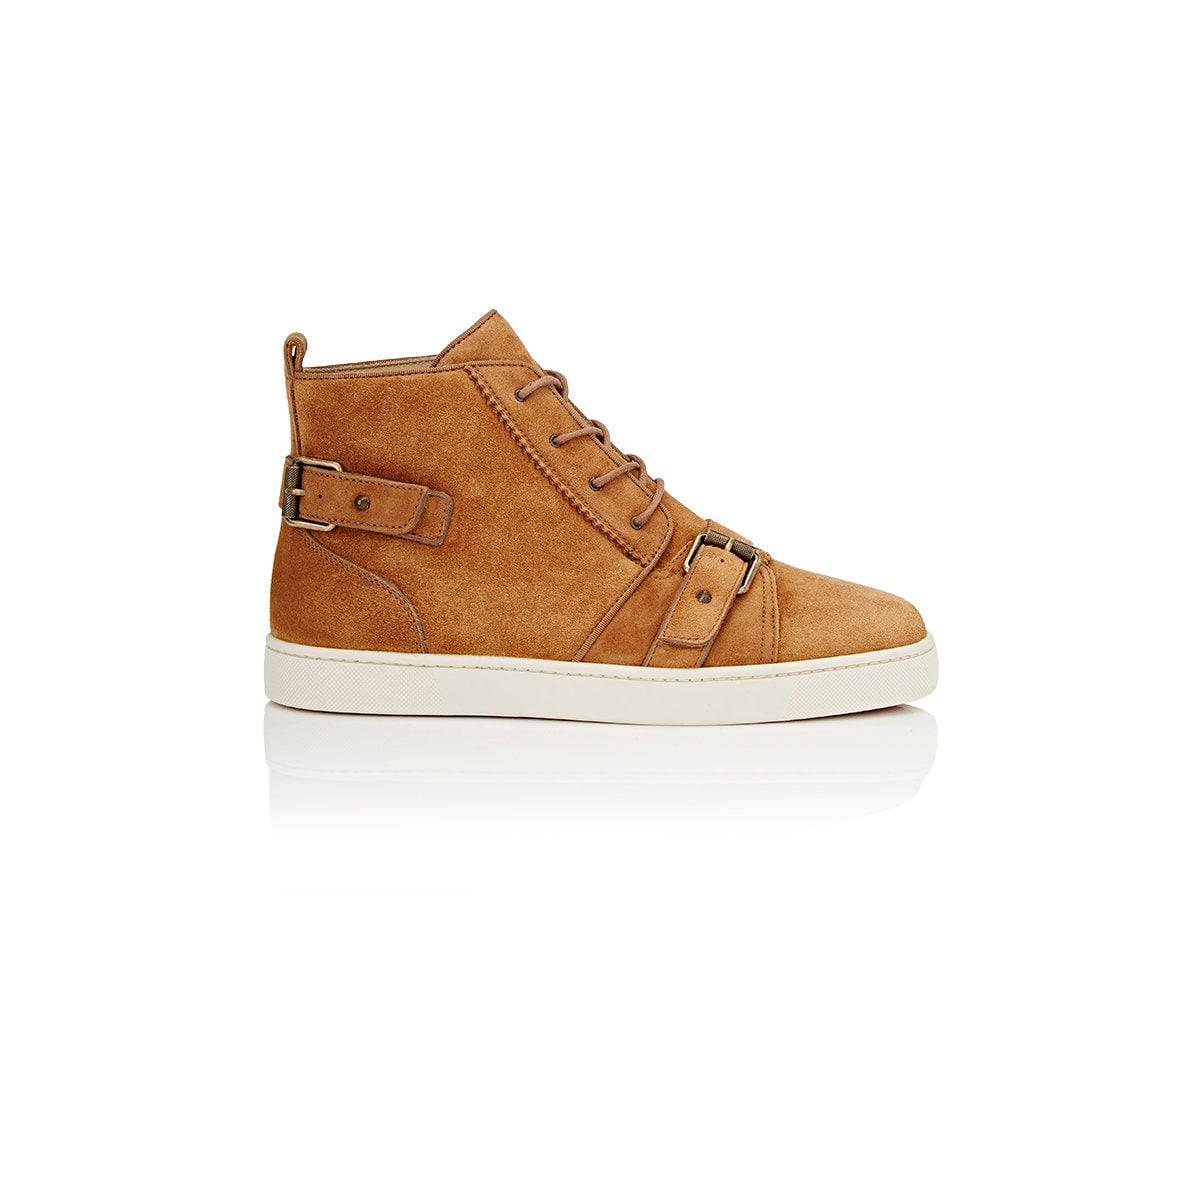 a2fb23caa95c ... latte 82205 91bbd best lyst christian louboutin nono strap suede  sneakers for men c0ba3 257b3 ...